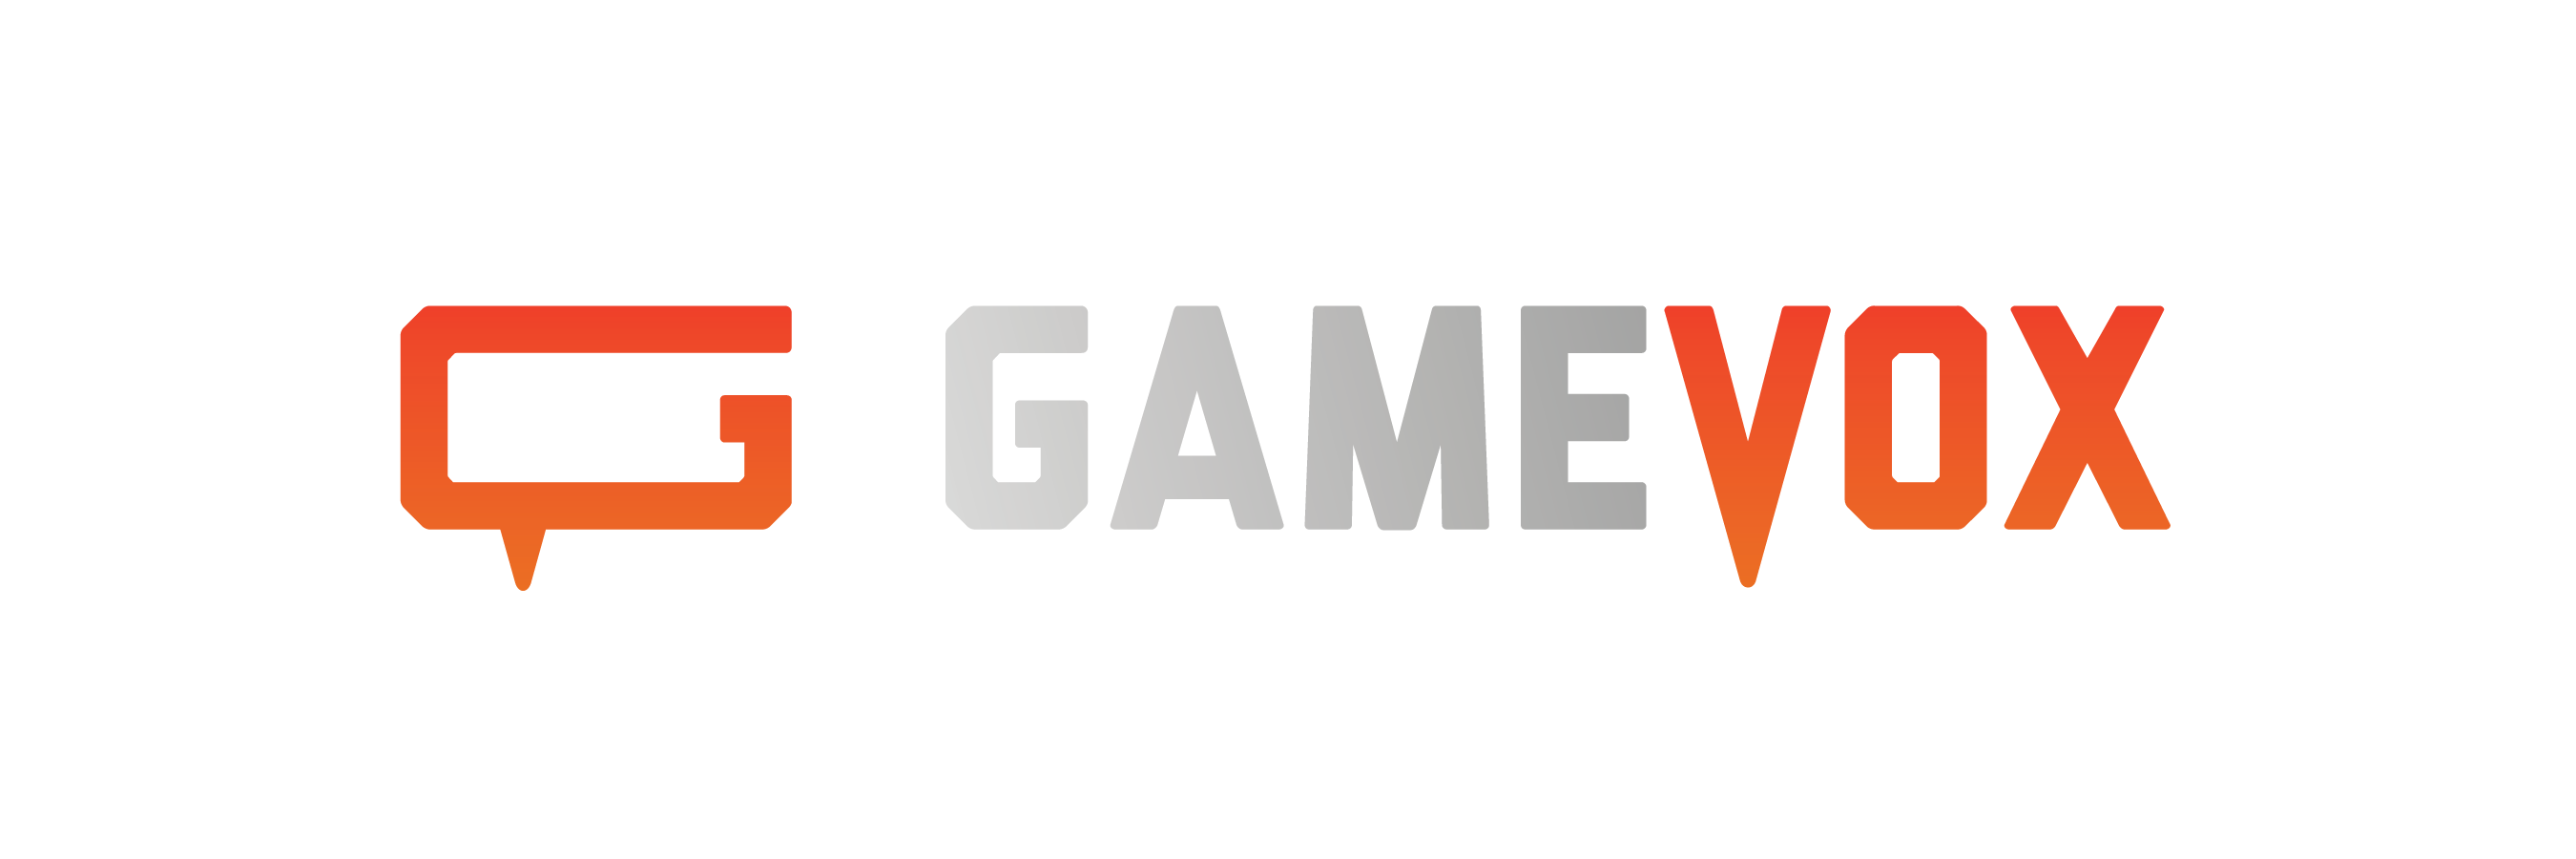 GameVox_logo_4c_light.png